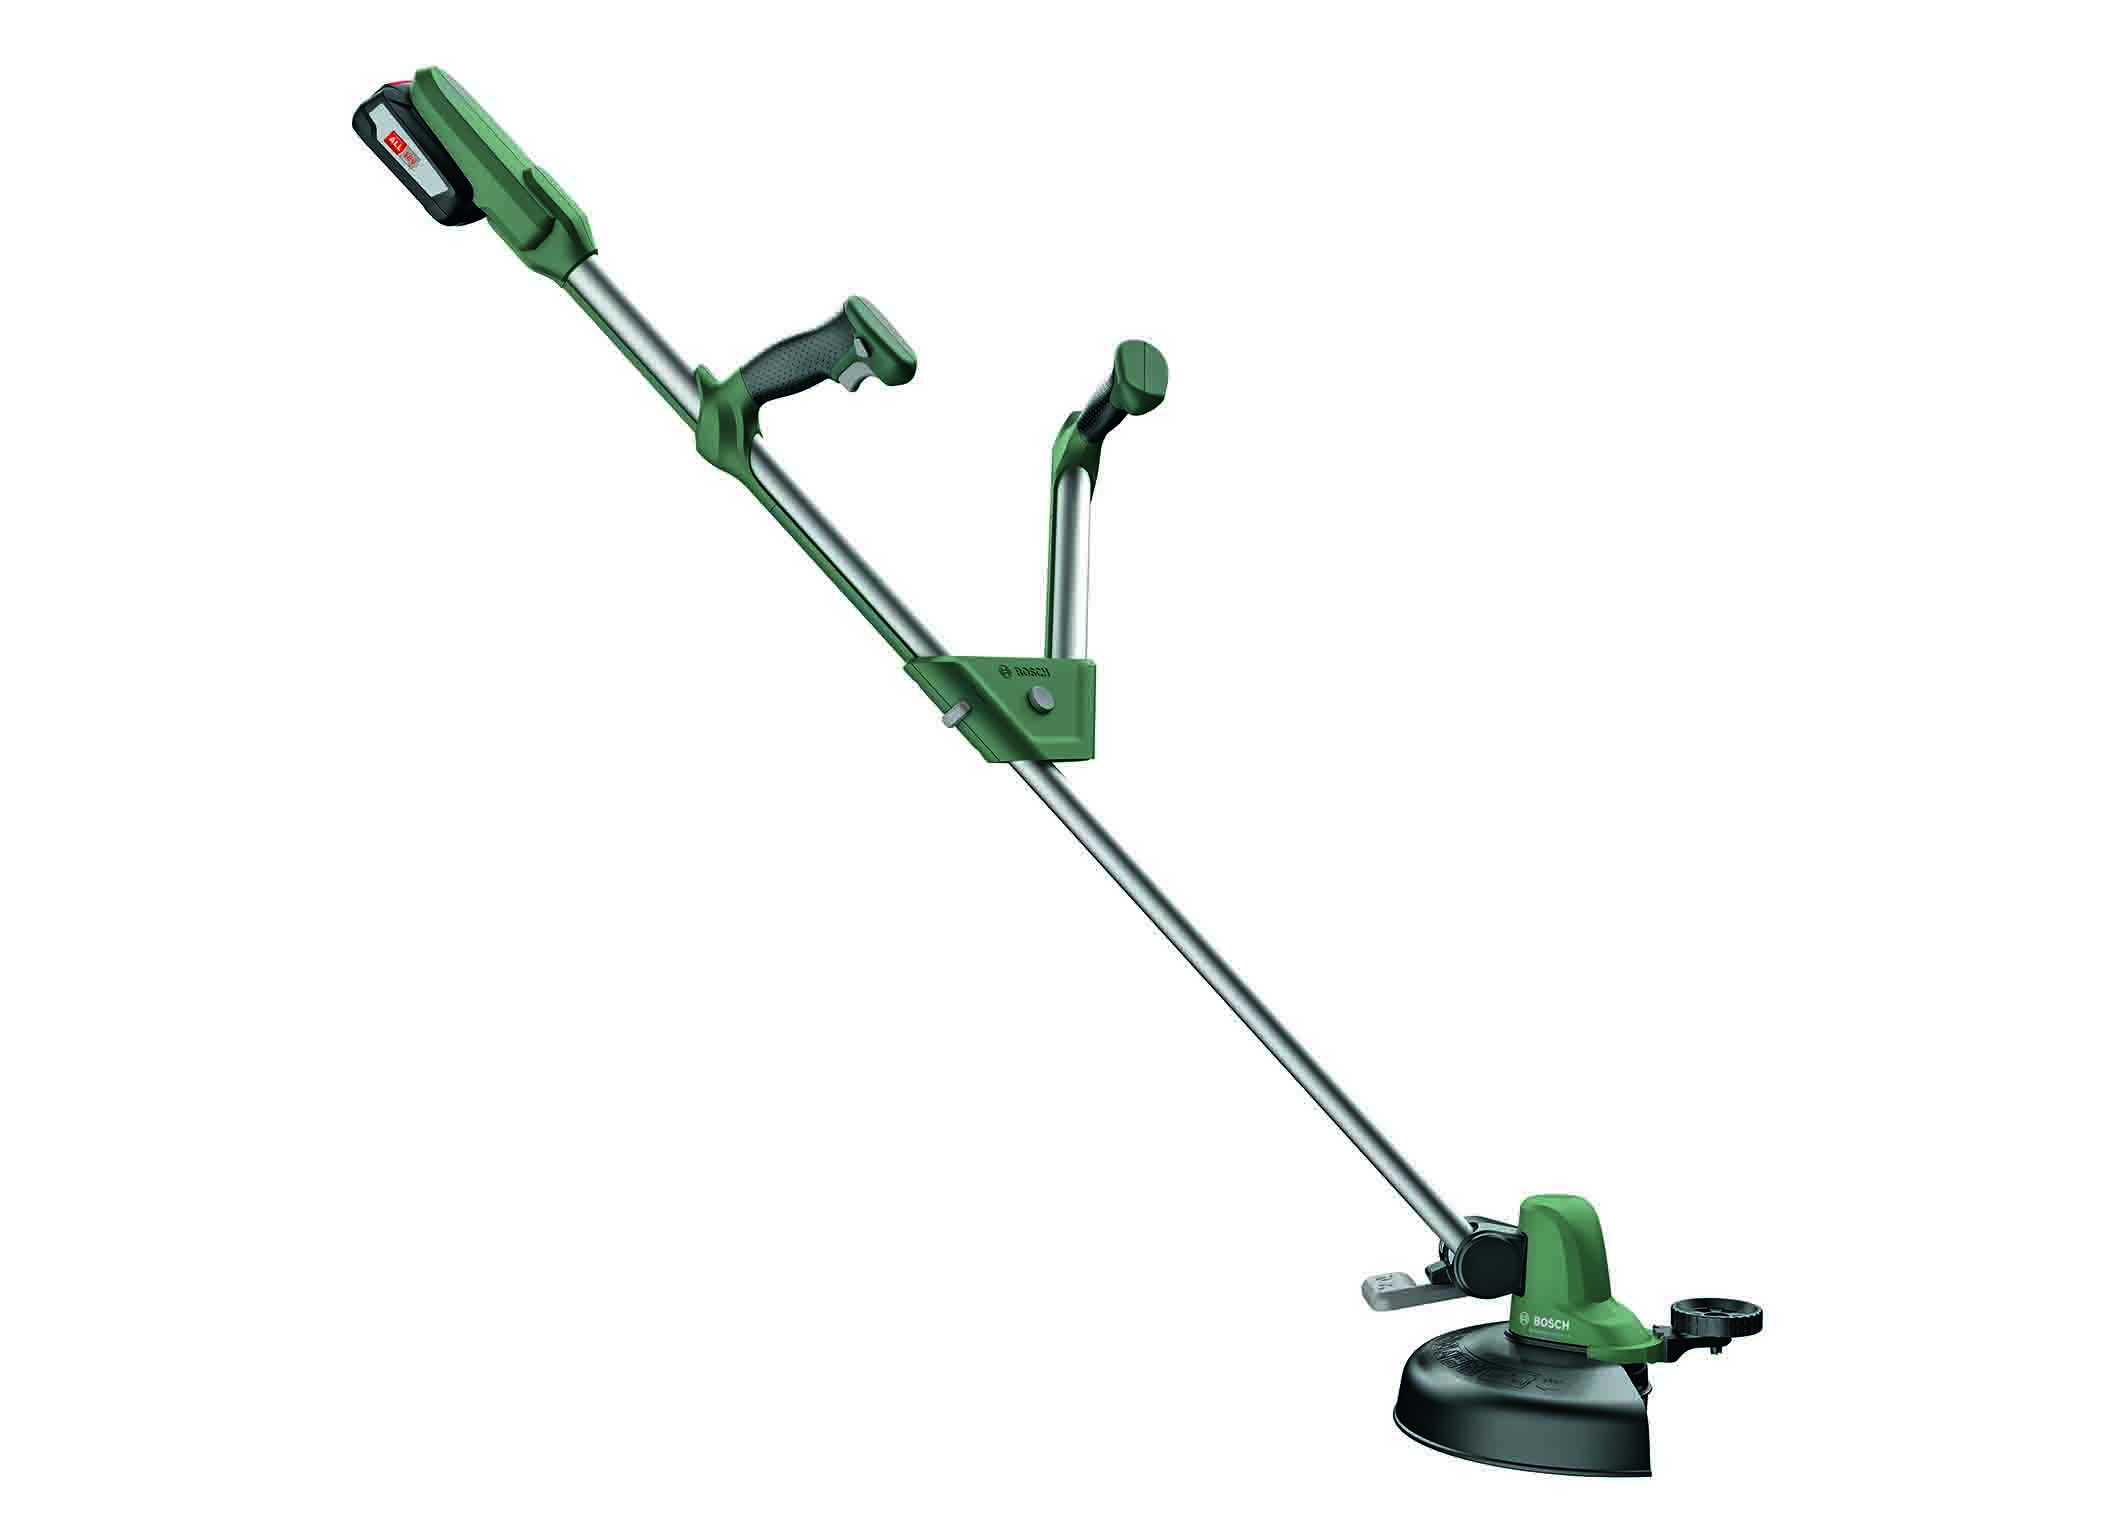 The new 18 volt trimmers from Bosch: UniversalGrassCut 18 for medium-sized gardens